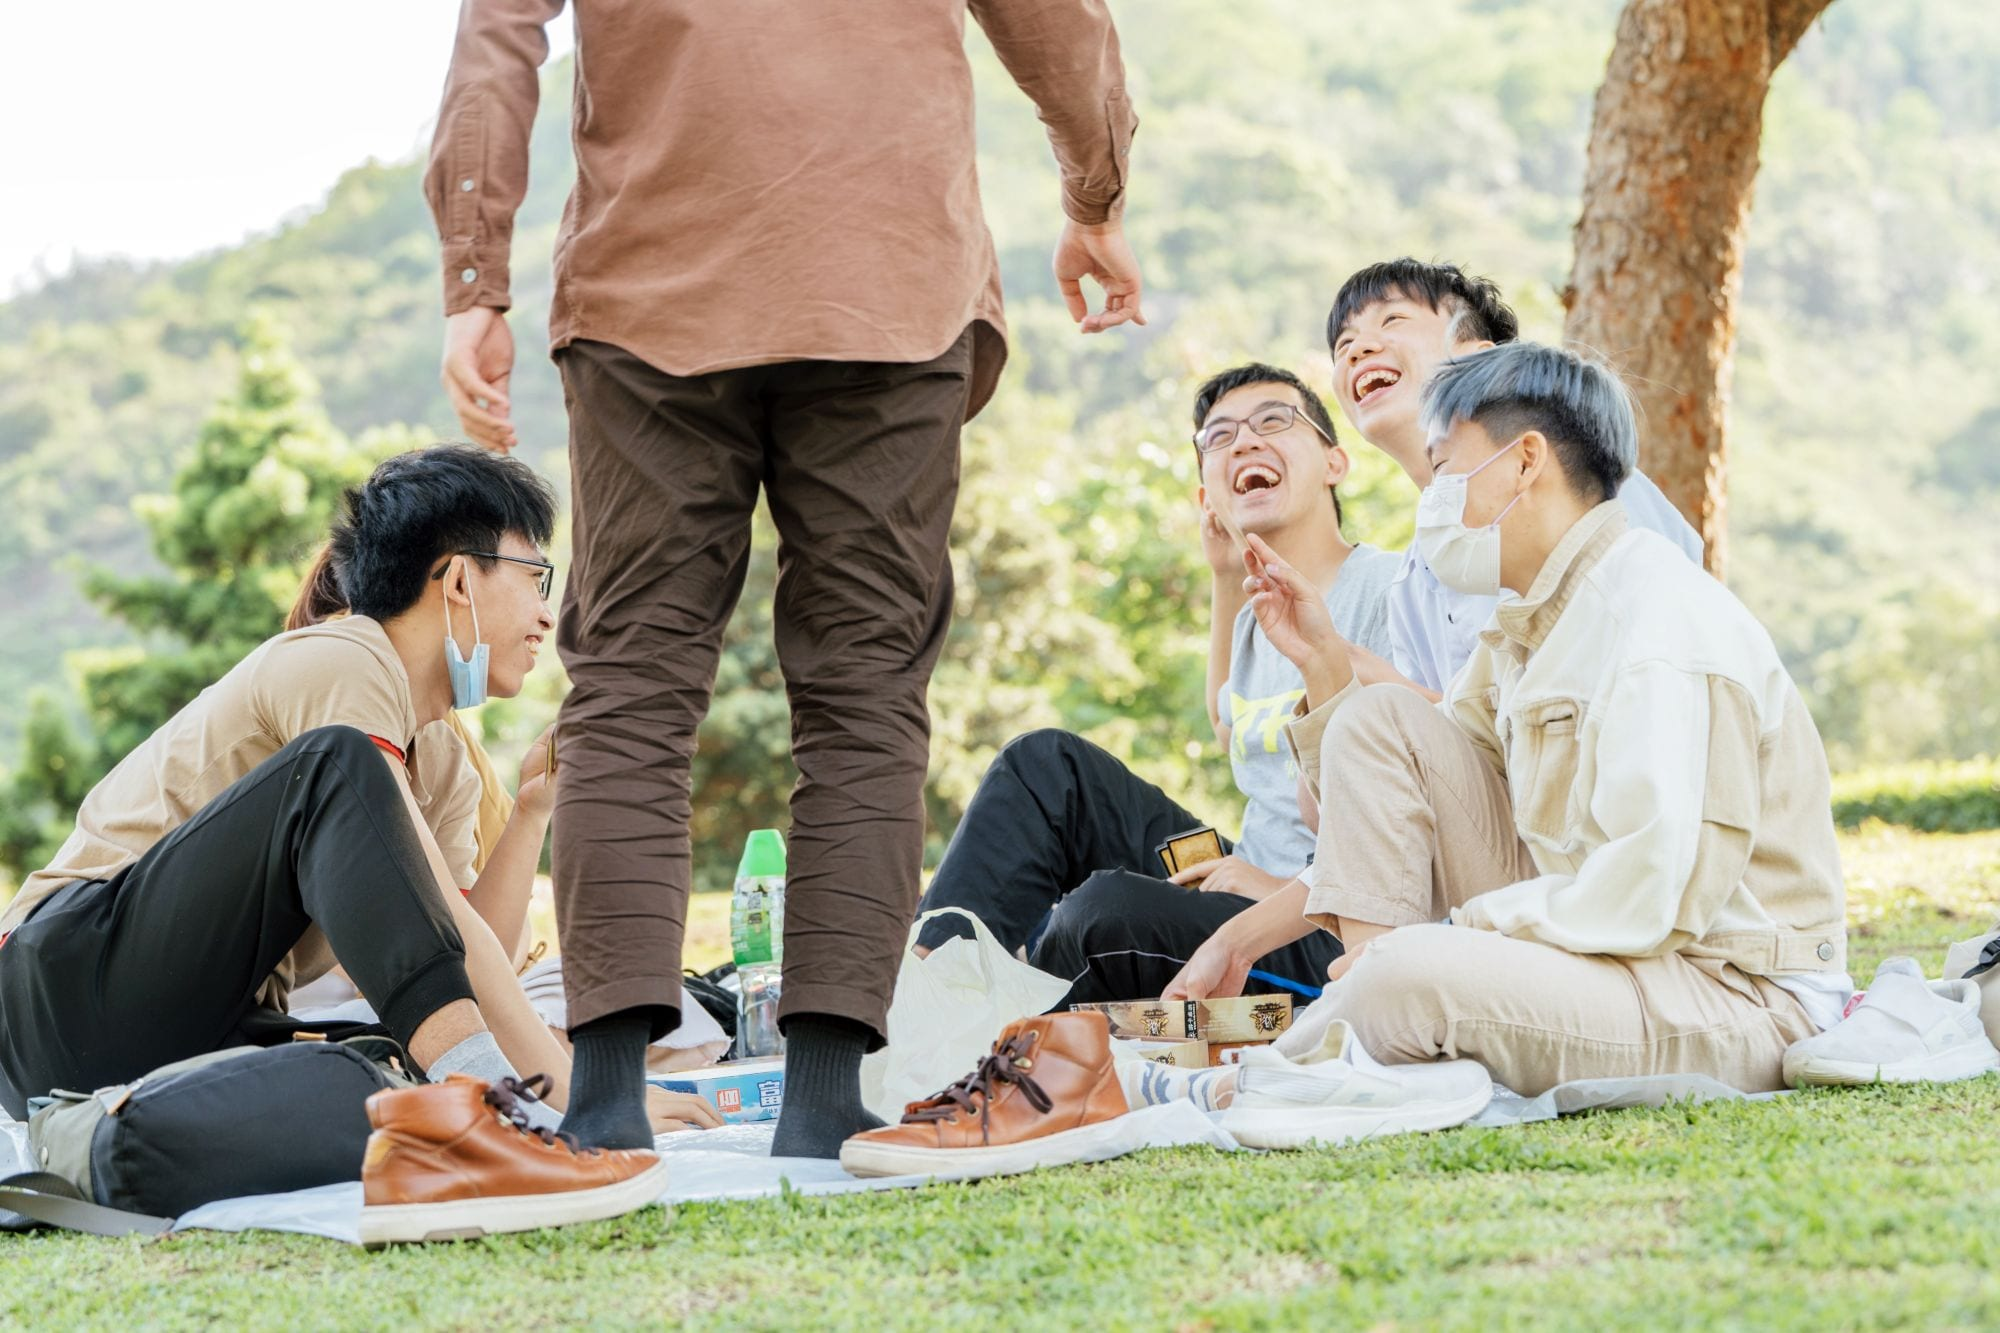 Friends at a picnic laughing; bamboo cutlery